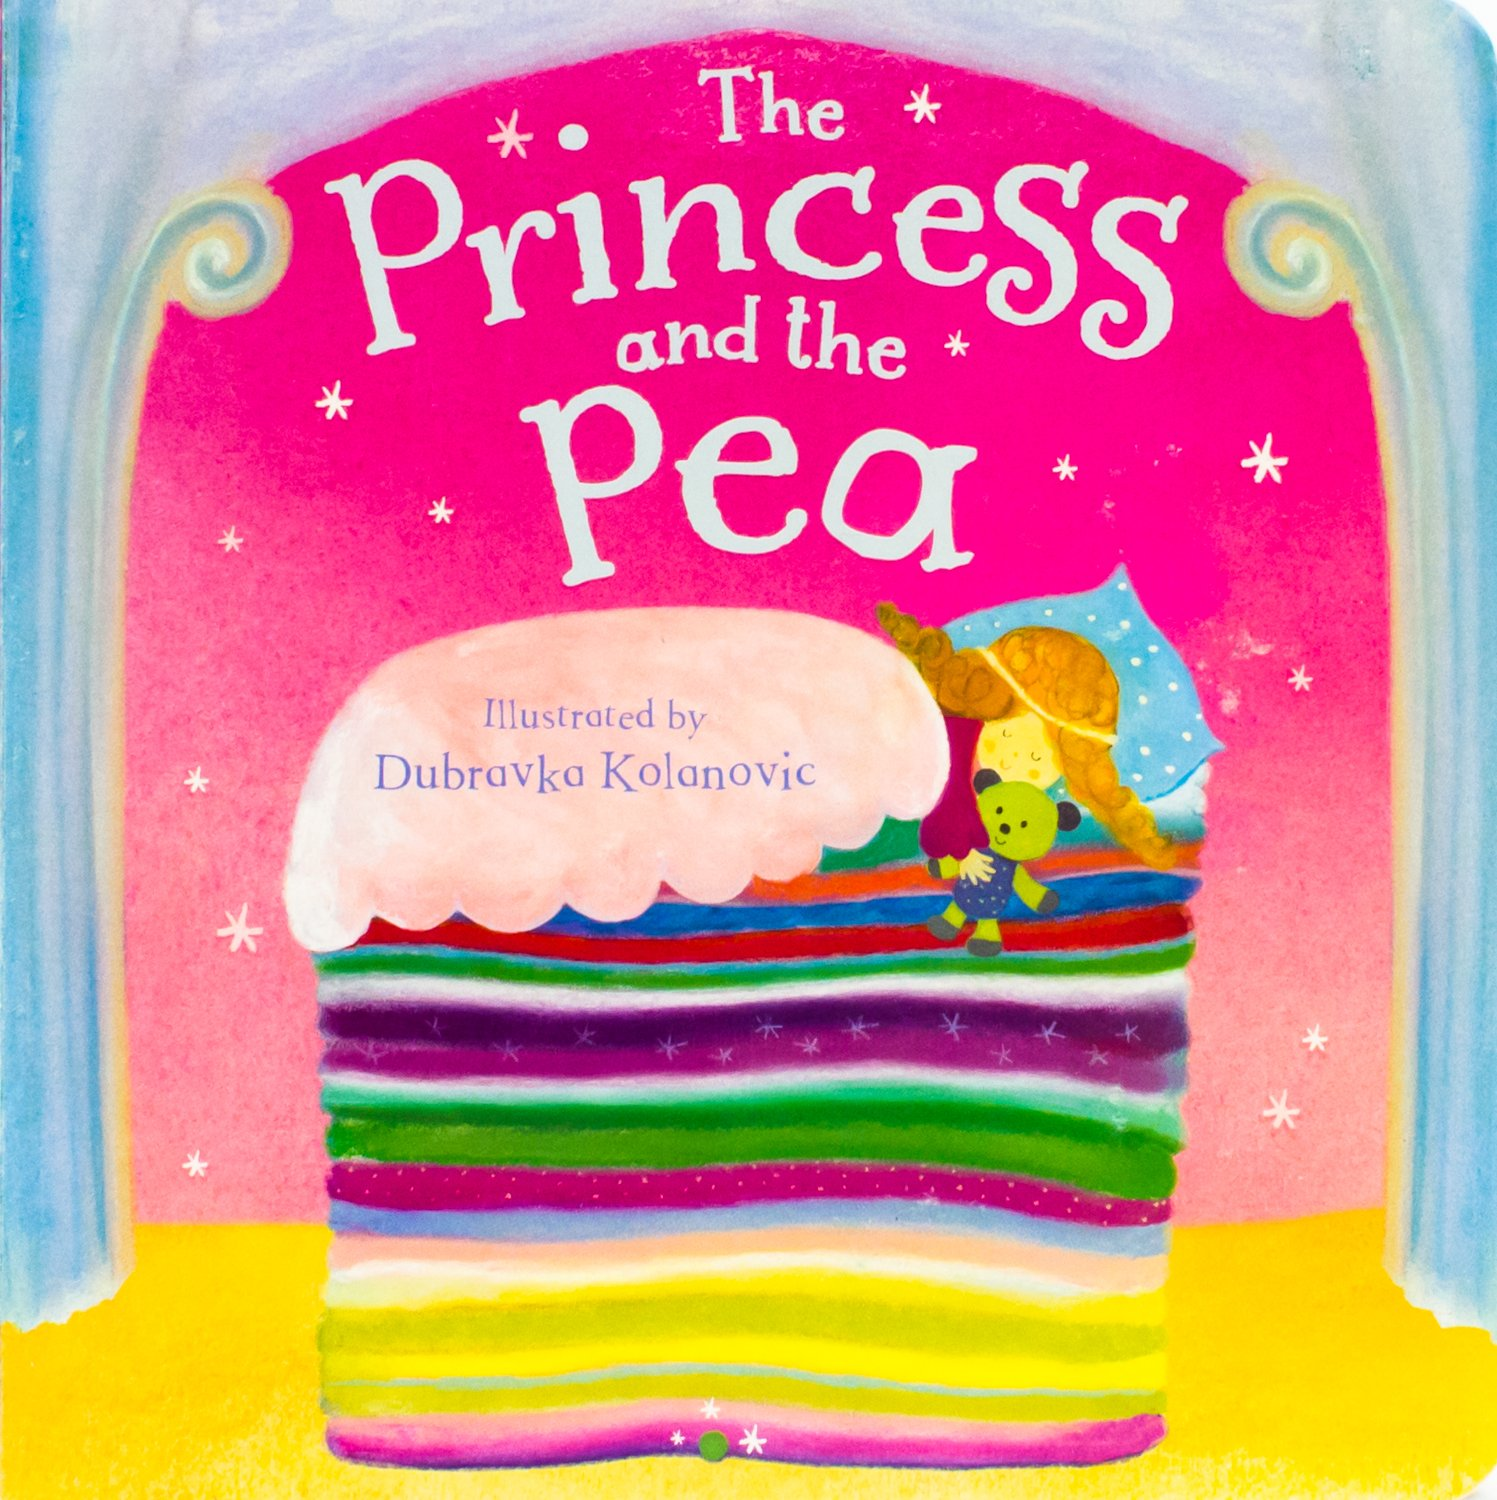 princess and the pea book. The Princess And Pea (Fairytale Boards): Parragon Books: 9781472352071: Amazon.com: Books Book N